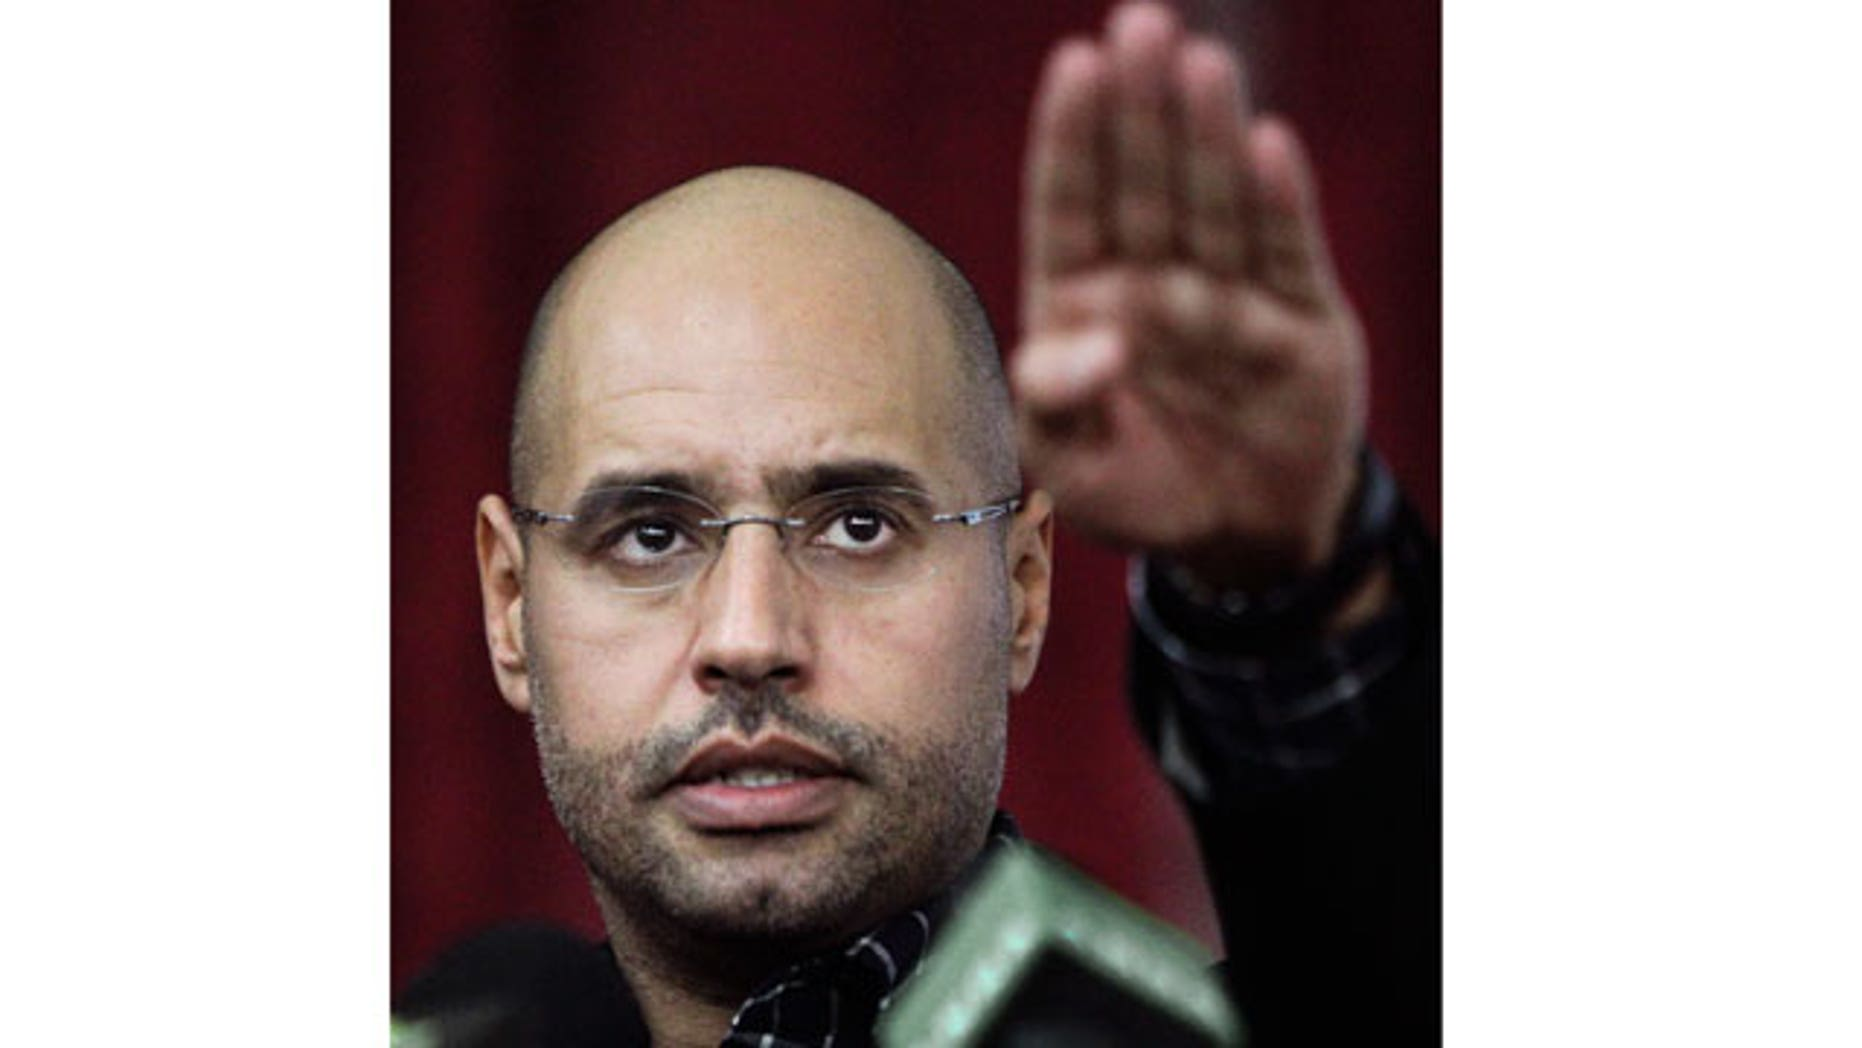 March 10, 2011: Seif al-Islam Qaddafi, son of Libyan leader Muammar Qaddafi, gestures as he speaks to supporters and the media in Tripoli, Libya.